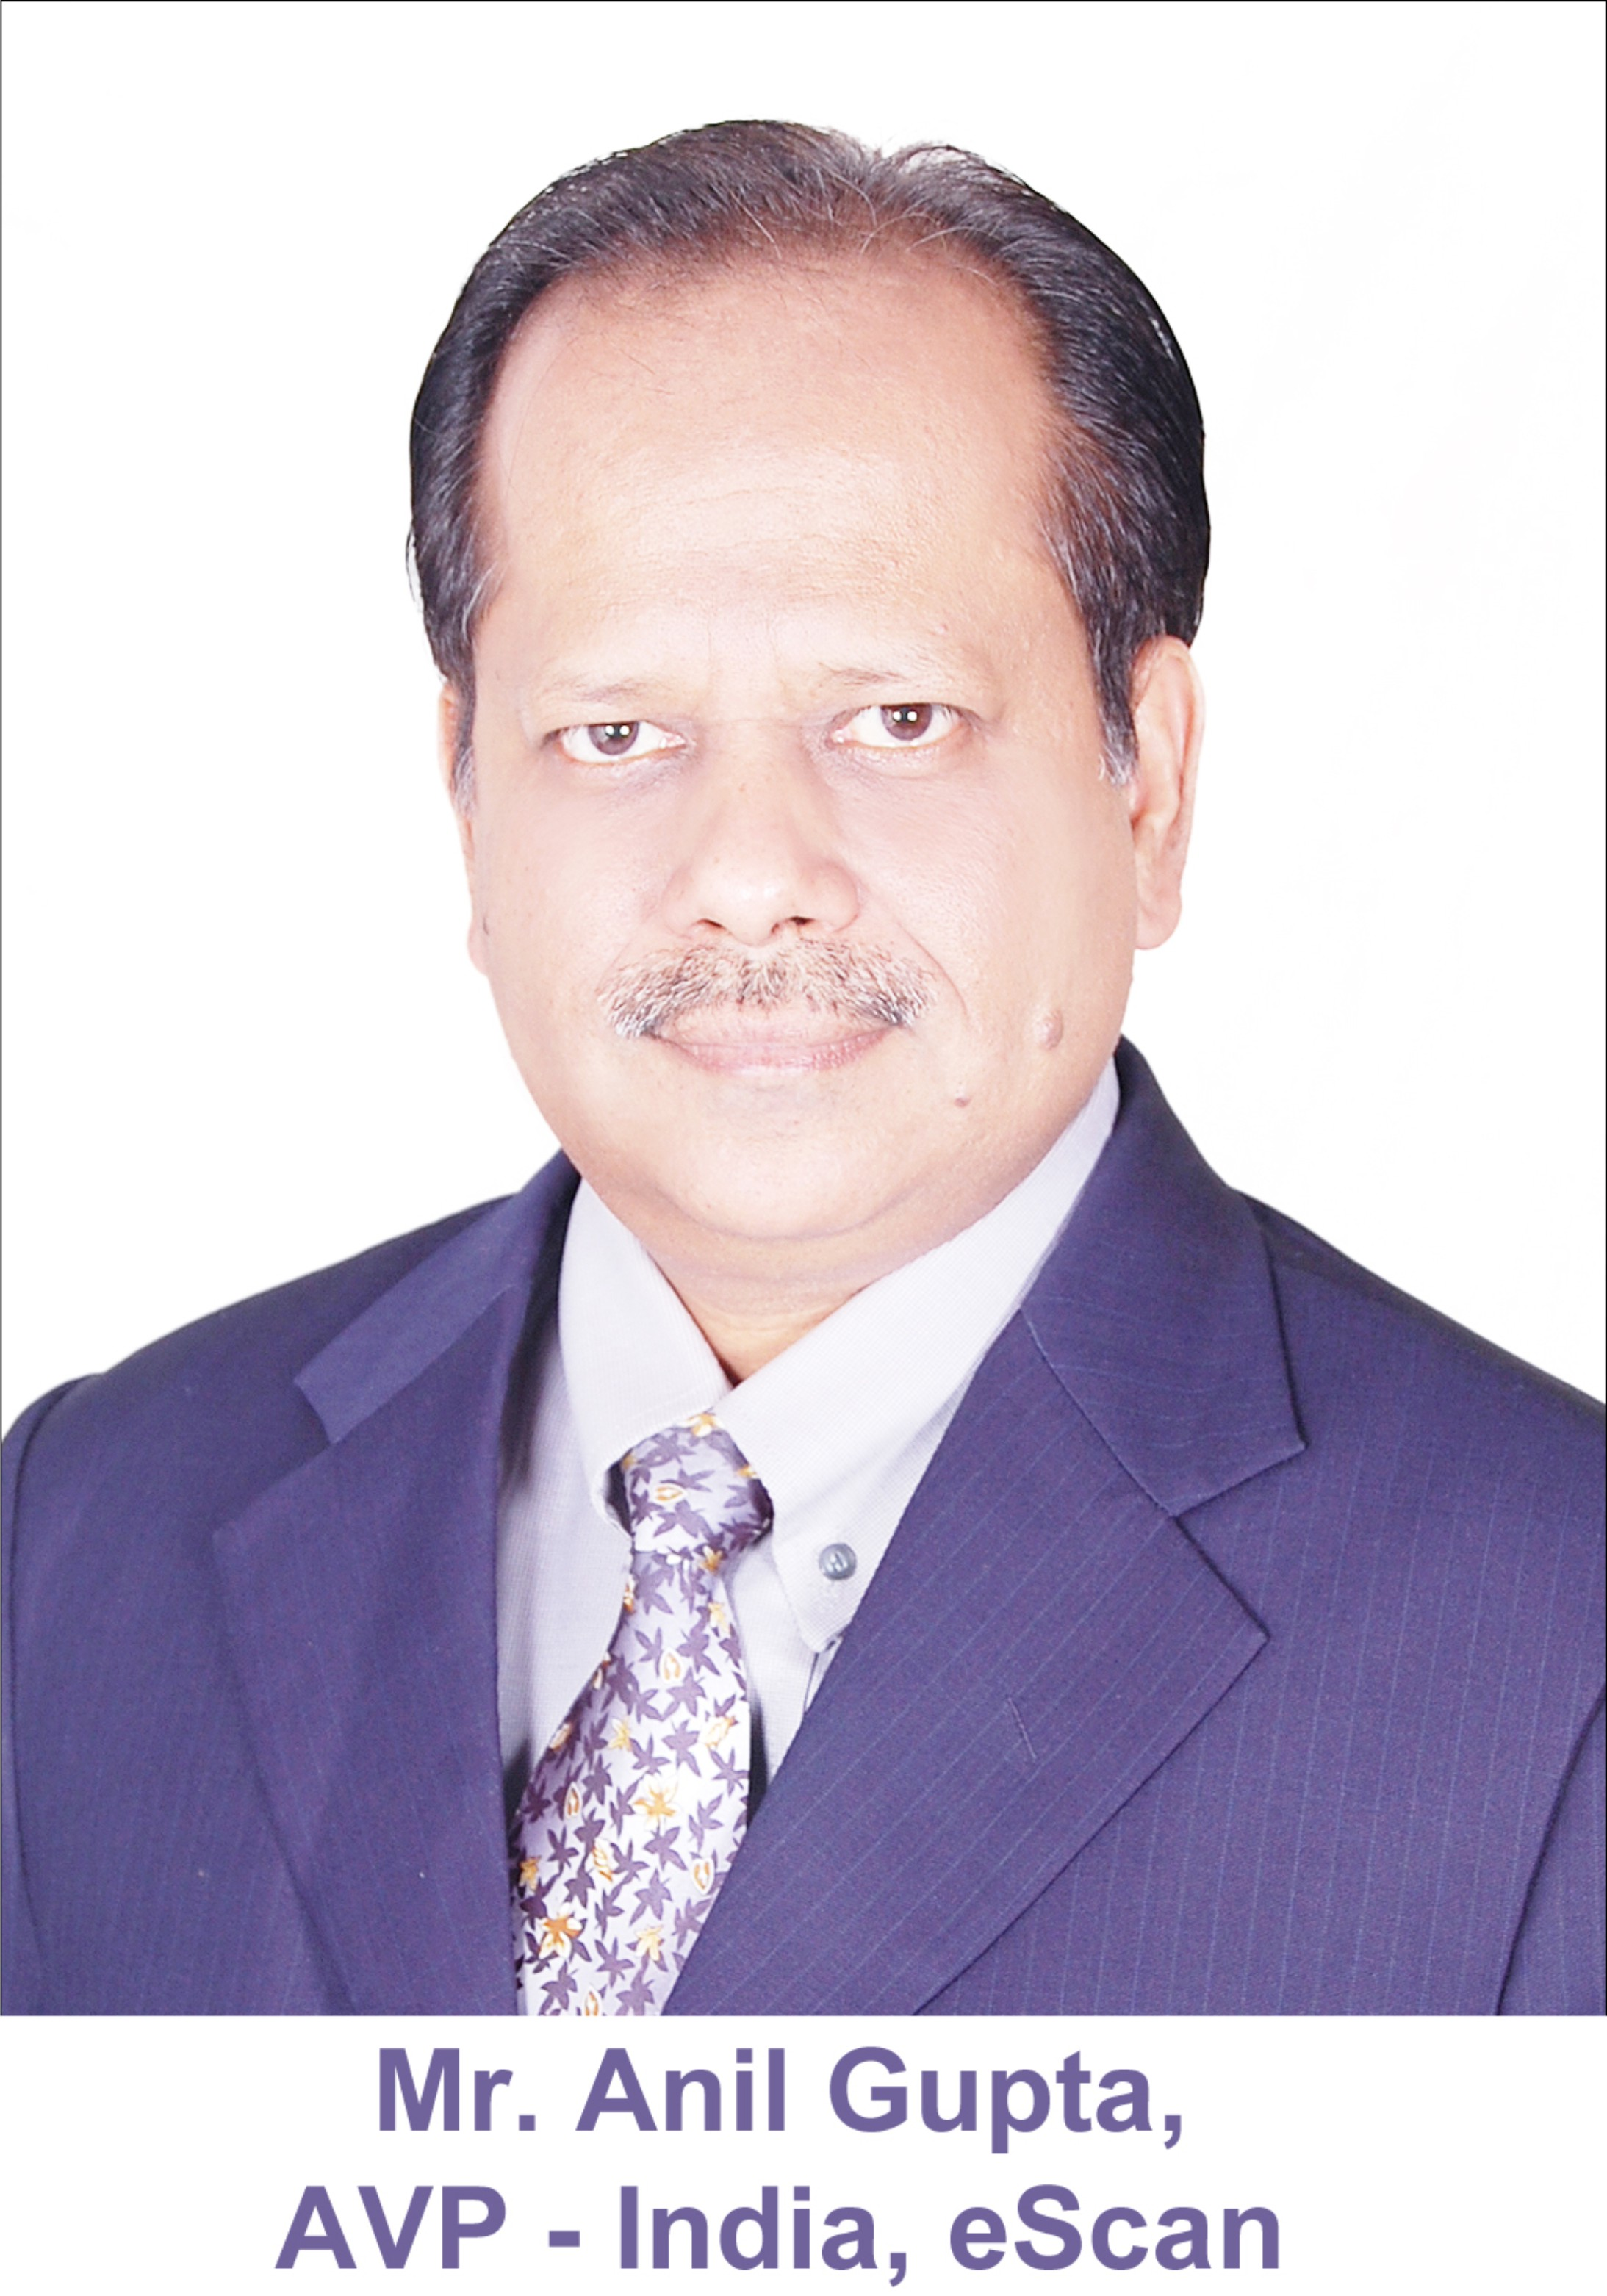 Mr. Anil Gupta